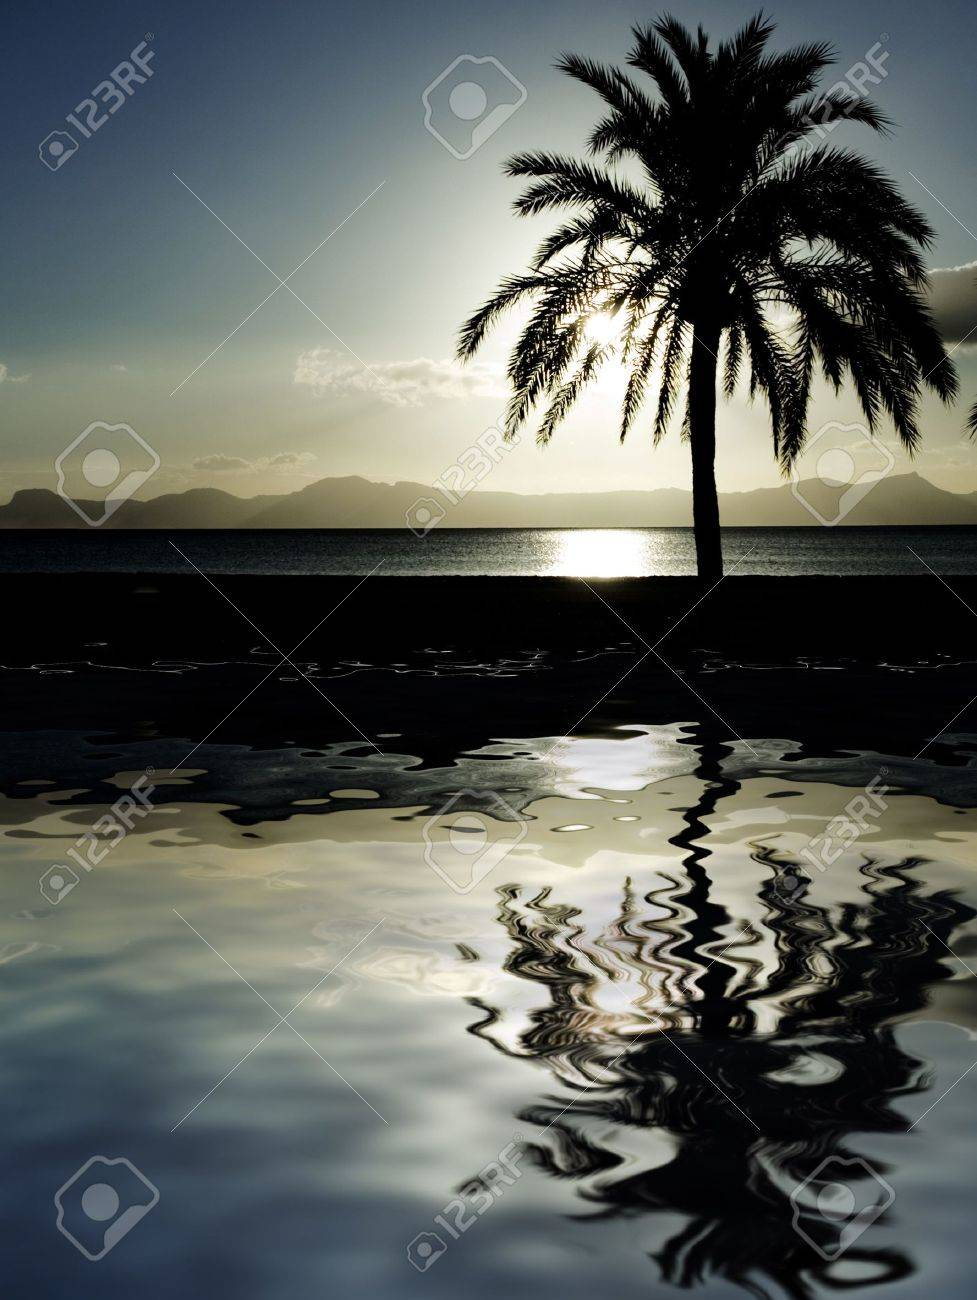 Palm tree at beach at dusk palm tree at beach at dusk 2643808 voltagebd Image collections